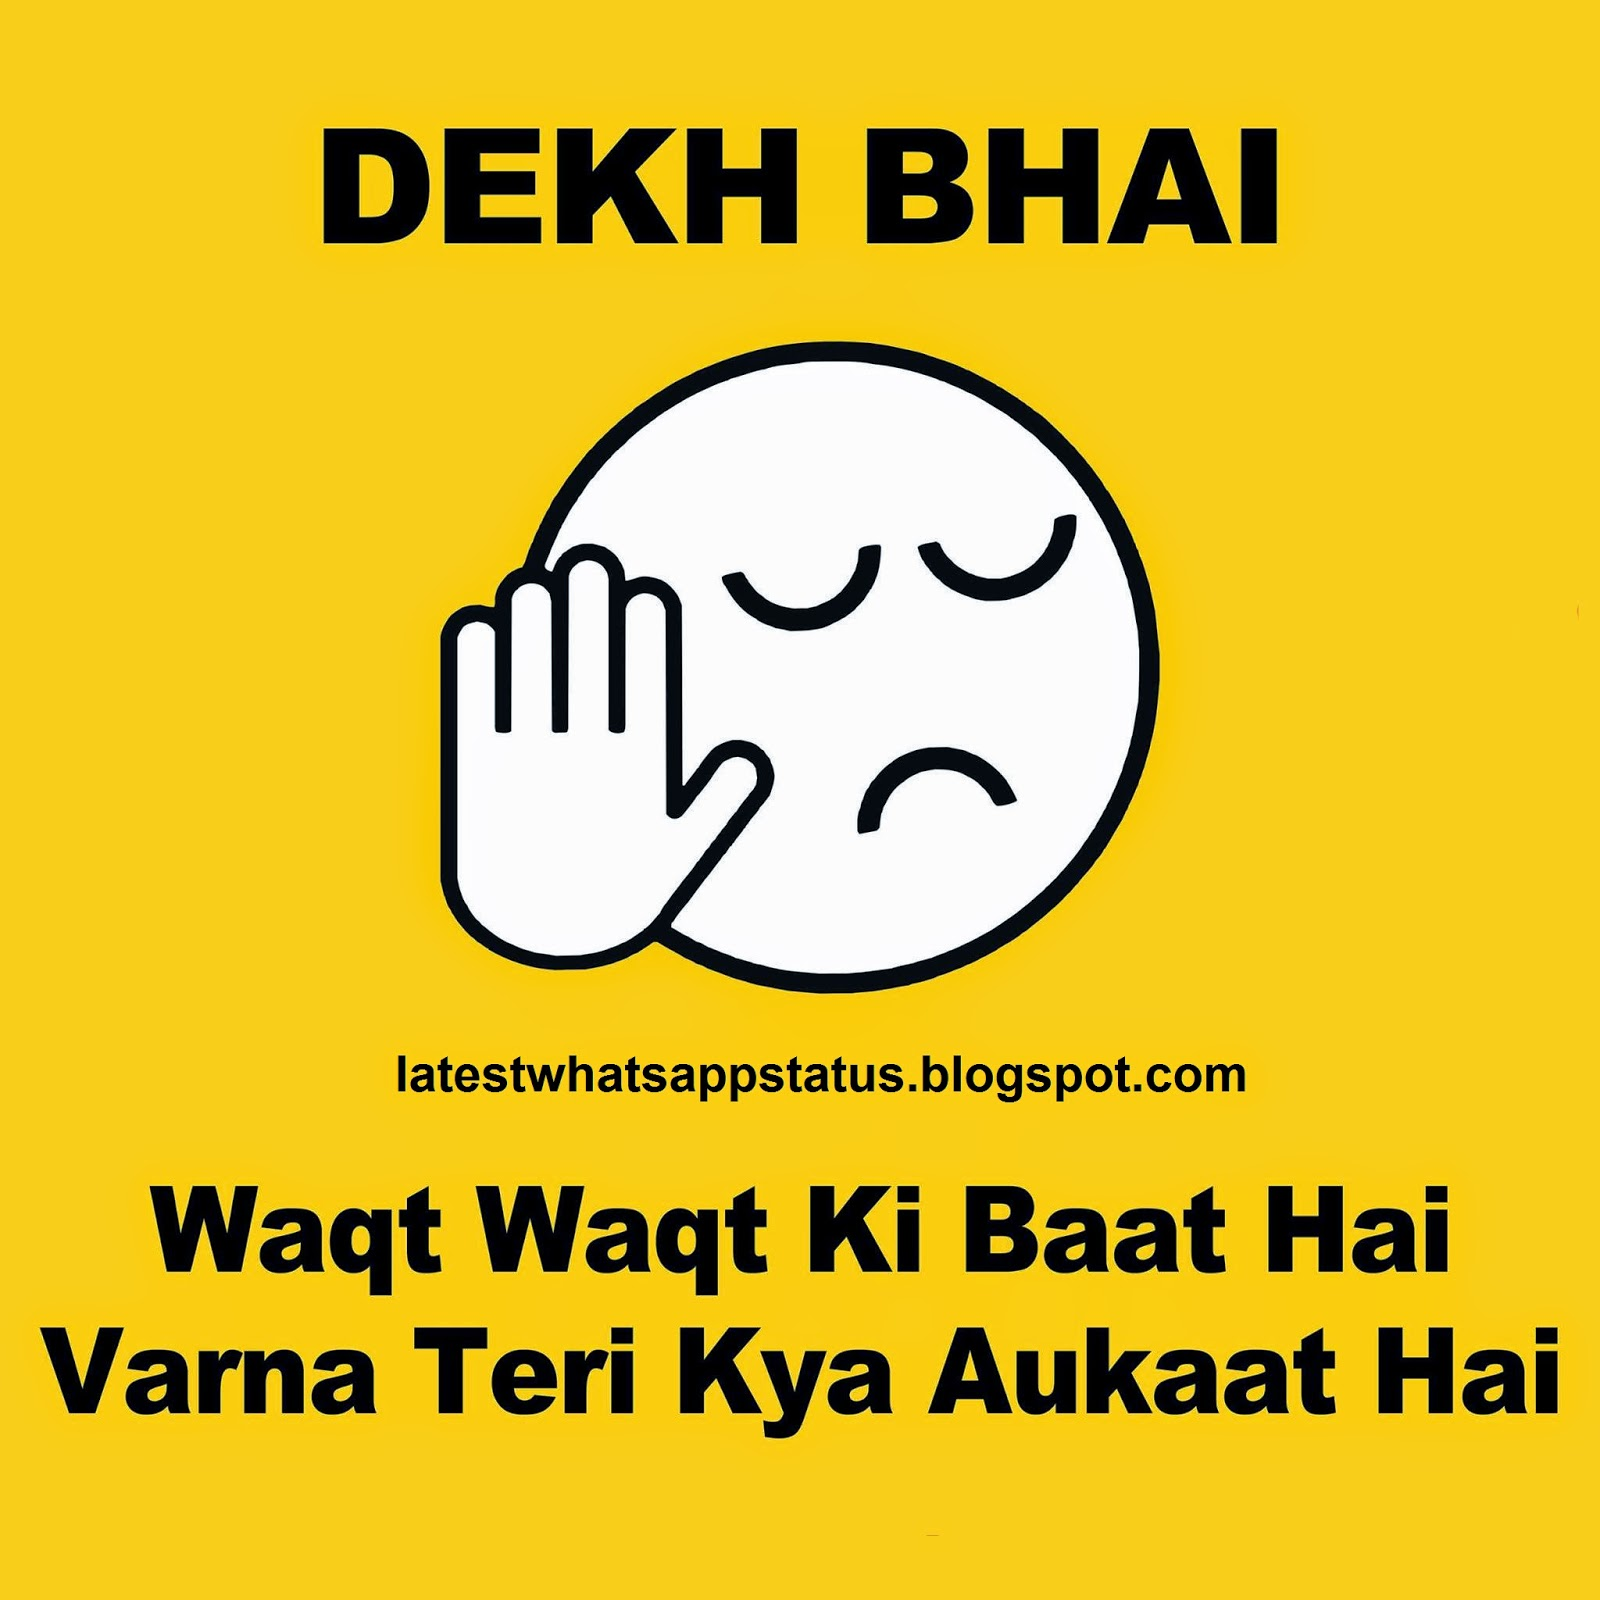 Best New funny dekh bhai images and Troll - Whatsapp ...